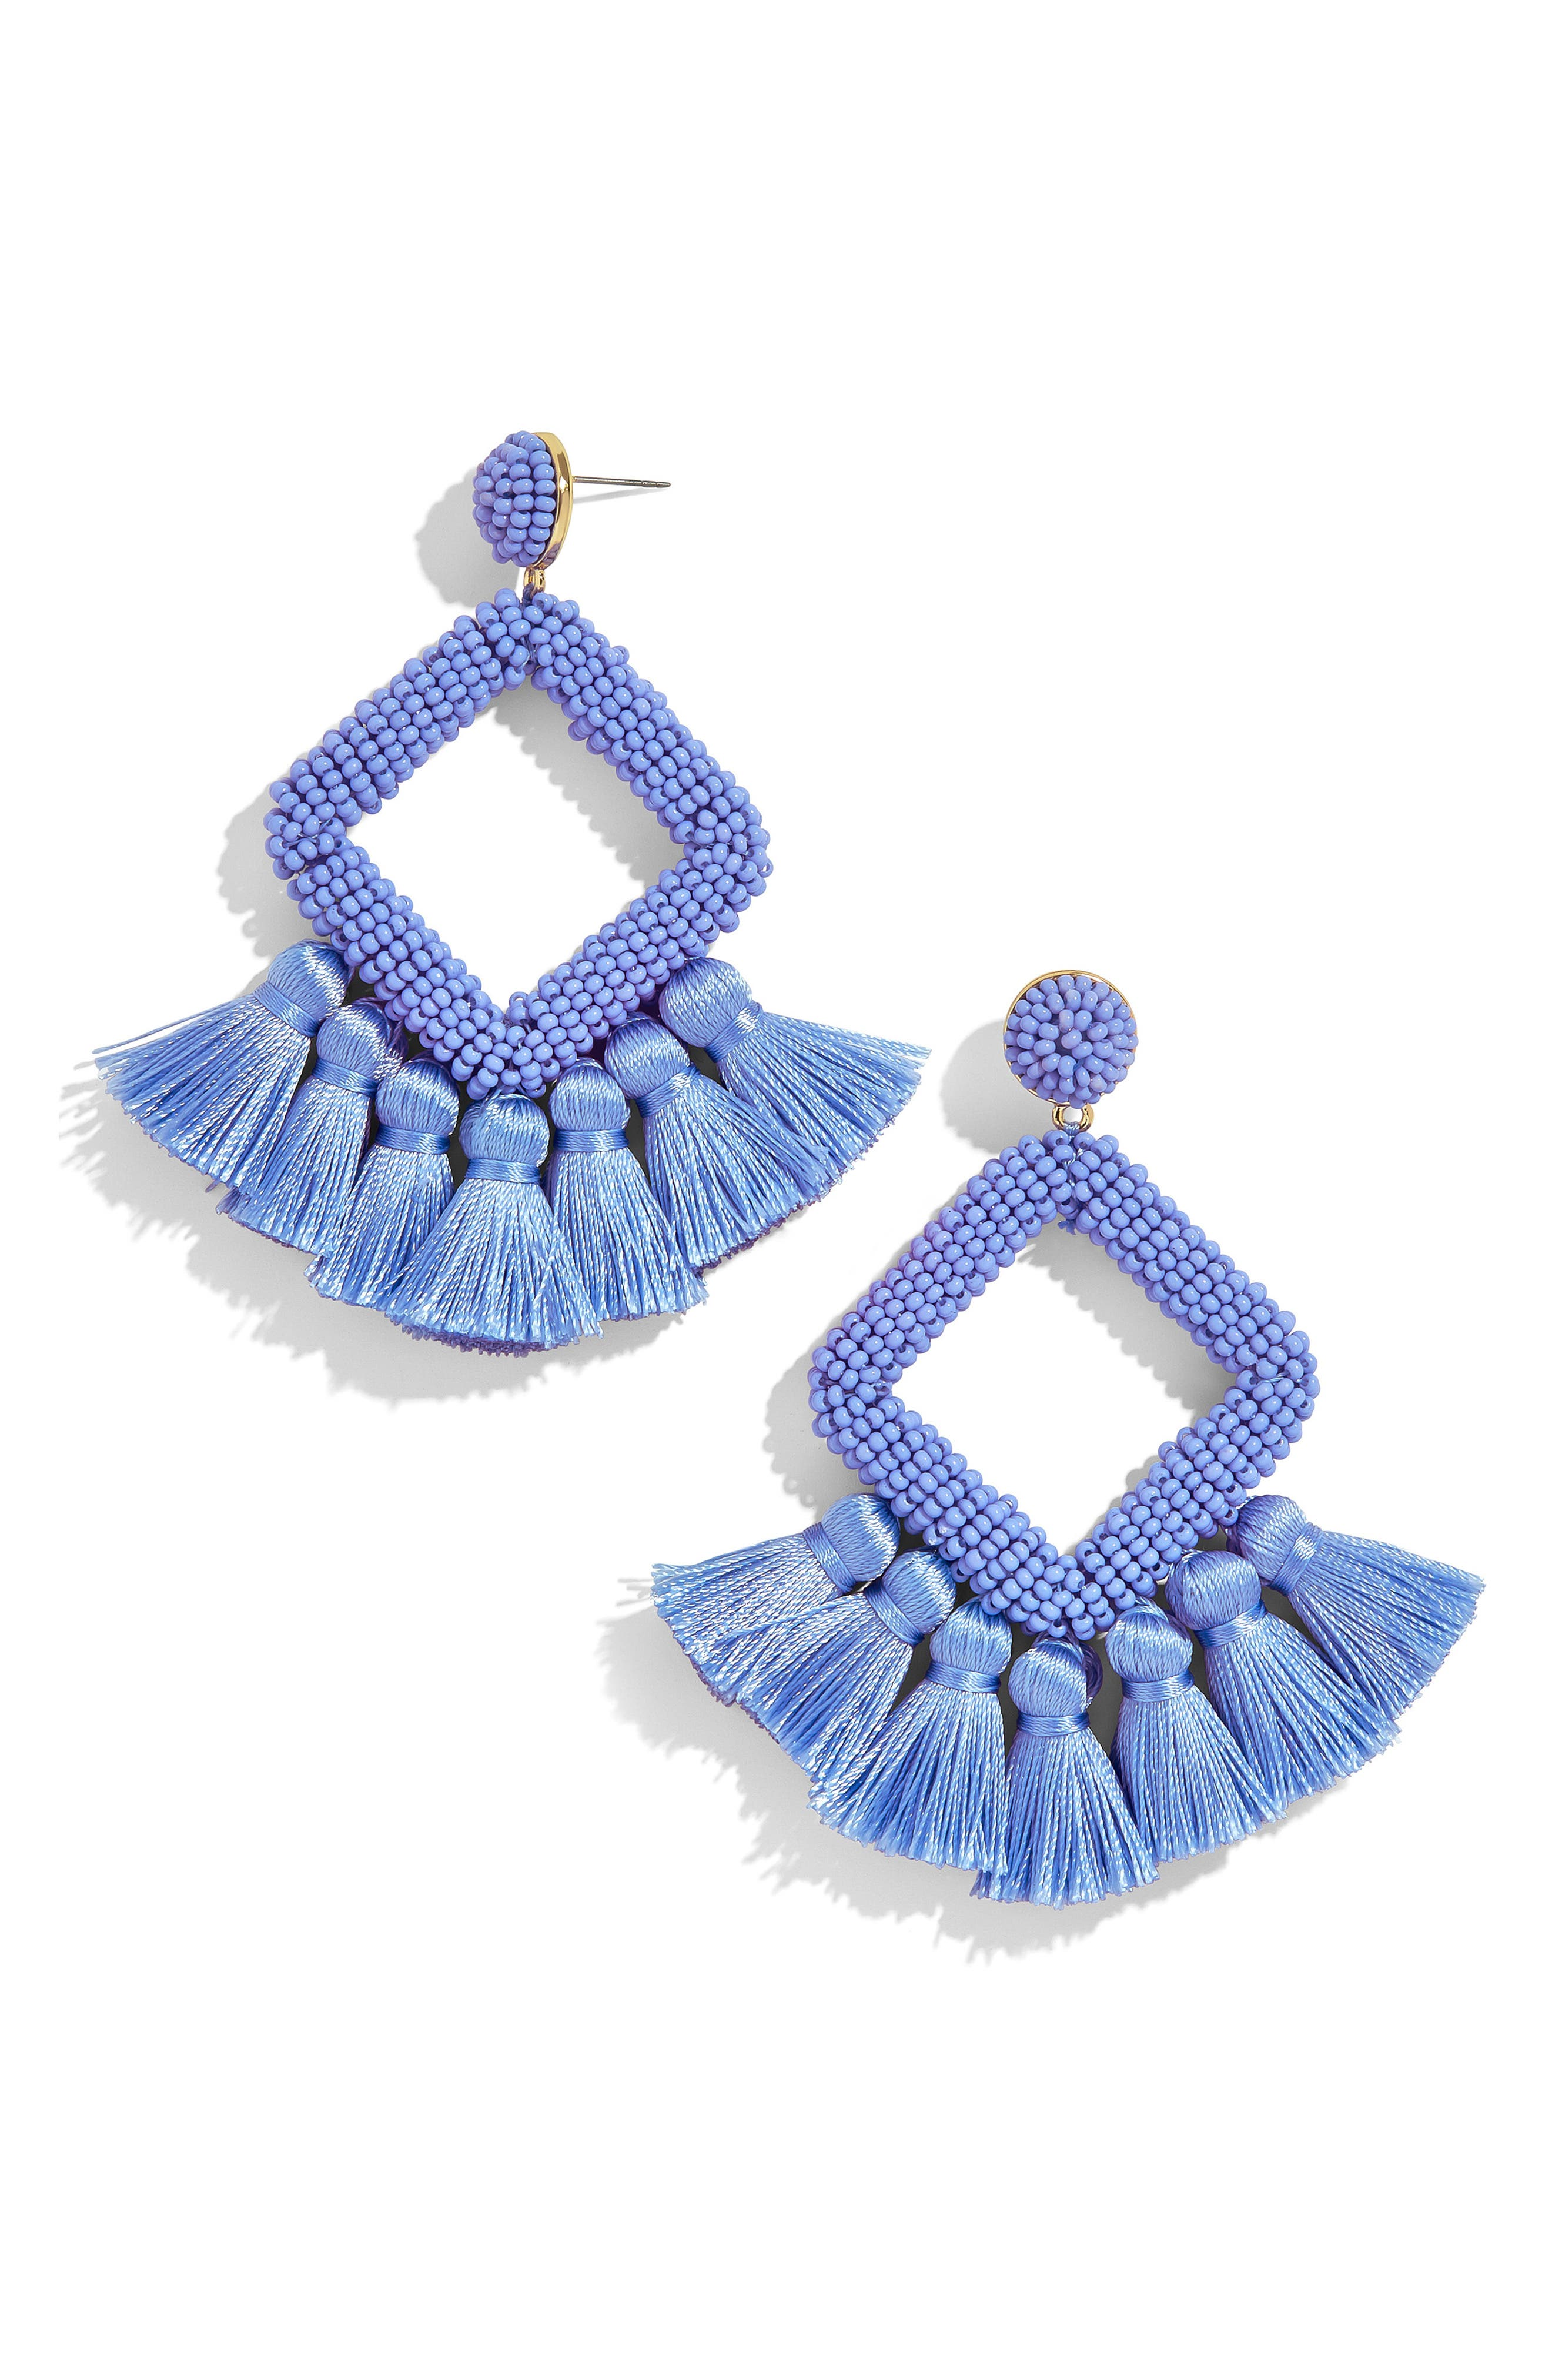 Laniyah Tassel Statement Earrings,                             Main thumbnail 1, color,                             BLUE